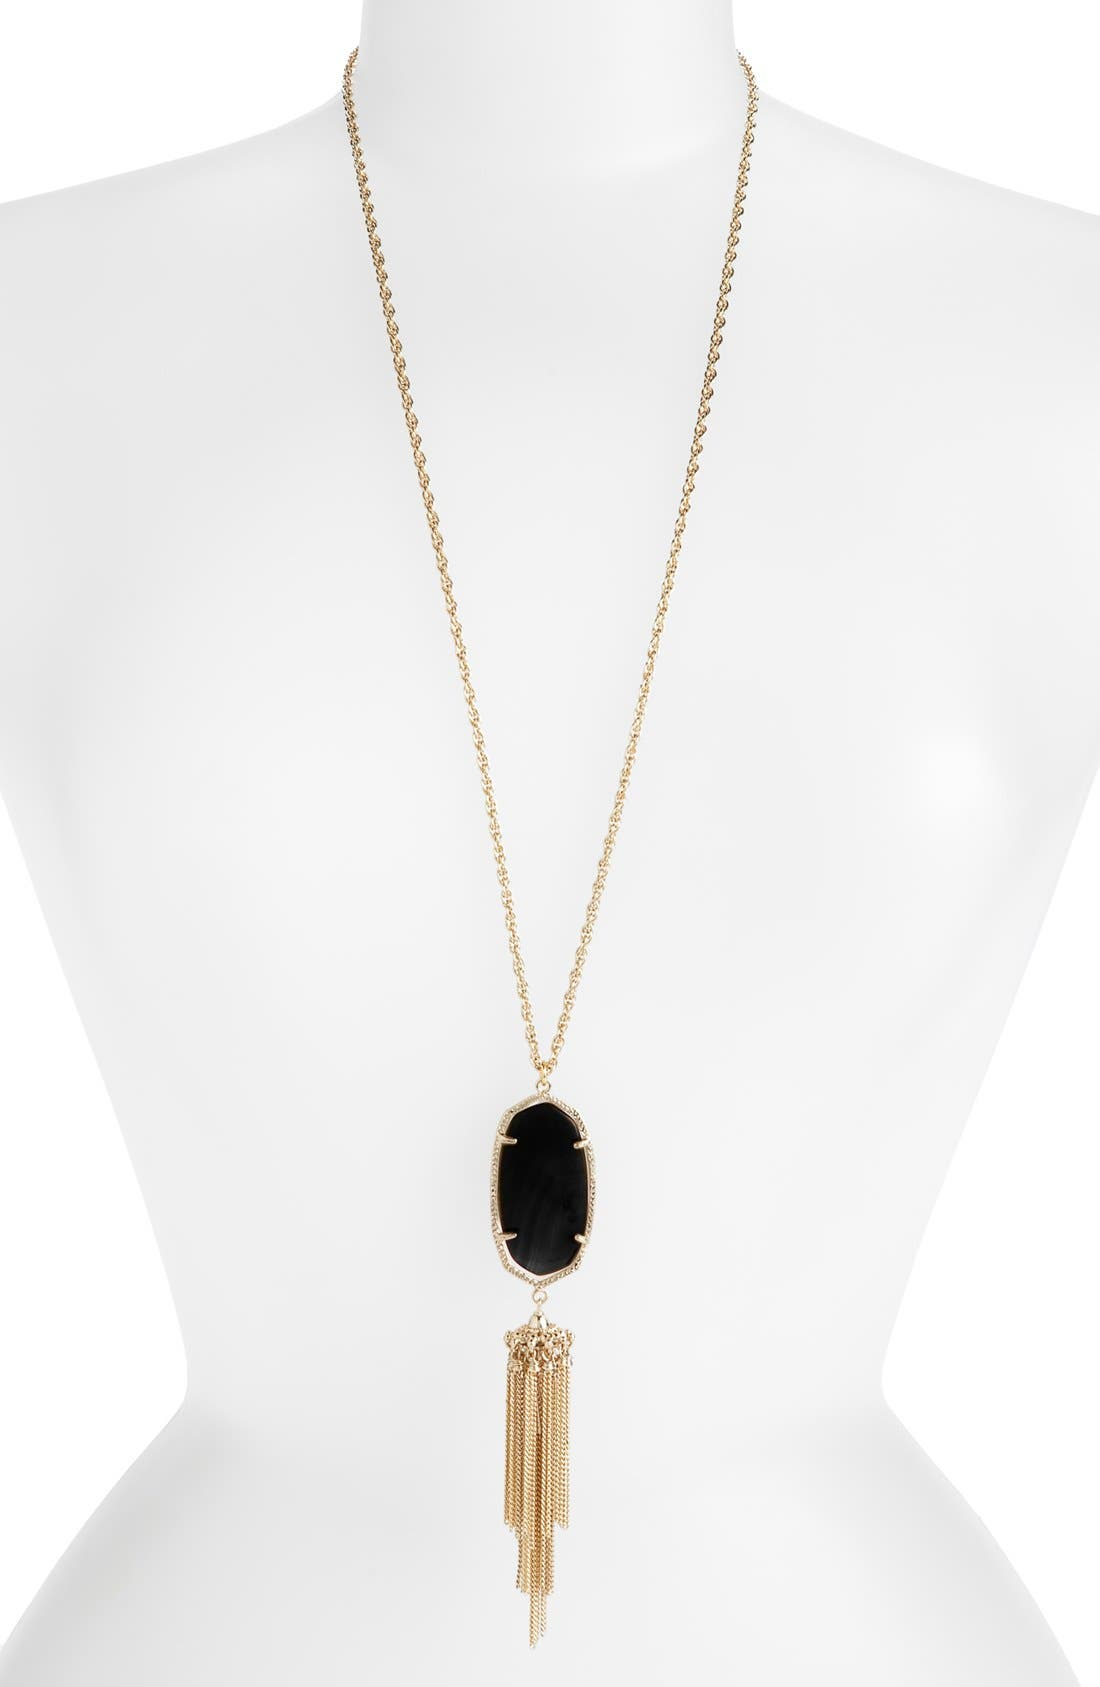 KENDRA SCOTT, Rayne Stone Tassel Pendant Necklace, Alternate thumbnail 2, color, 001